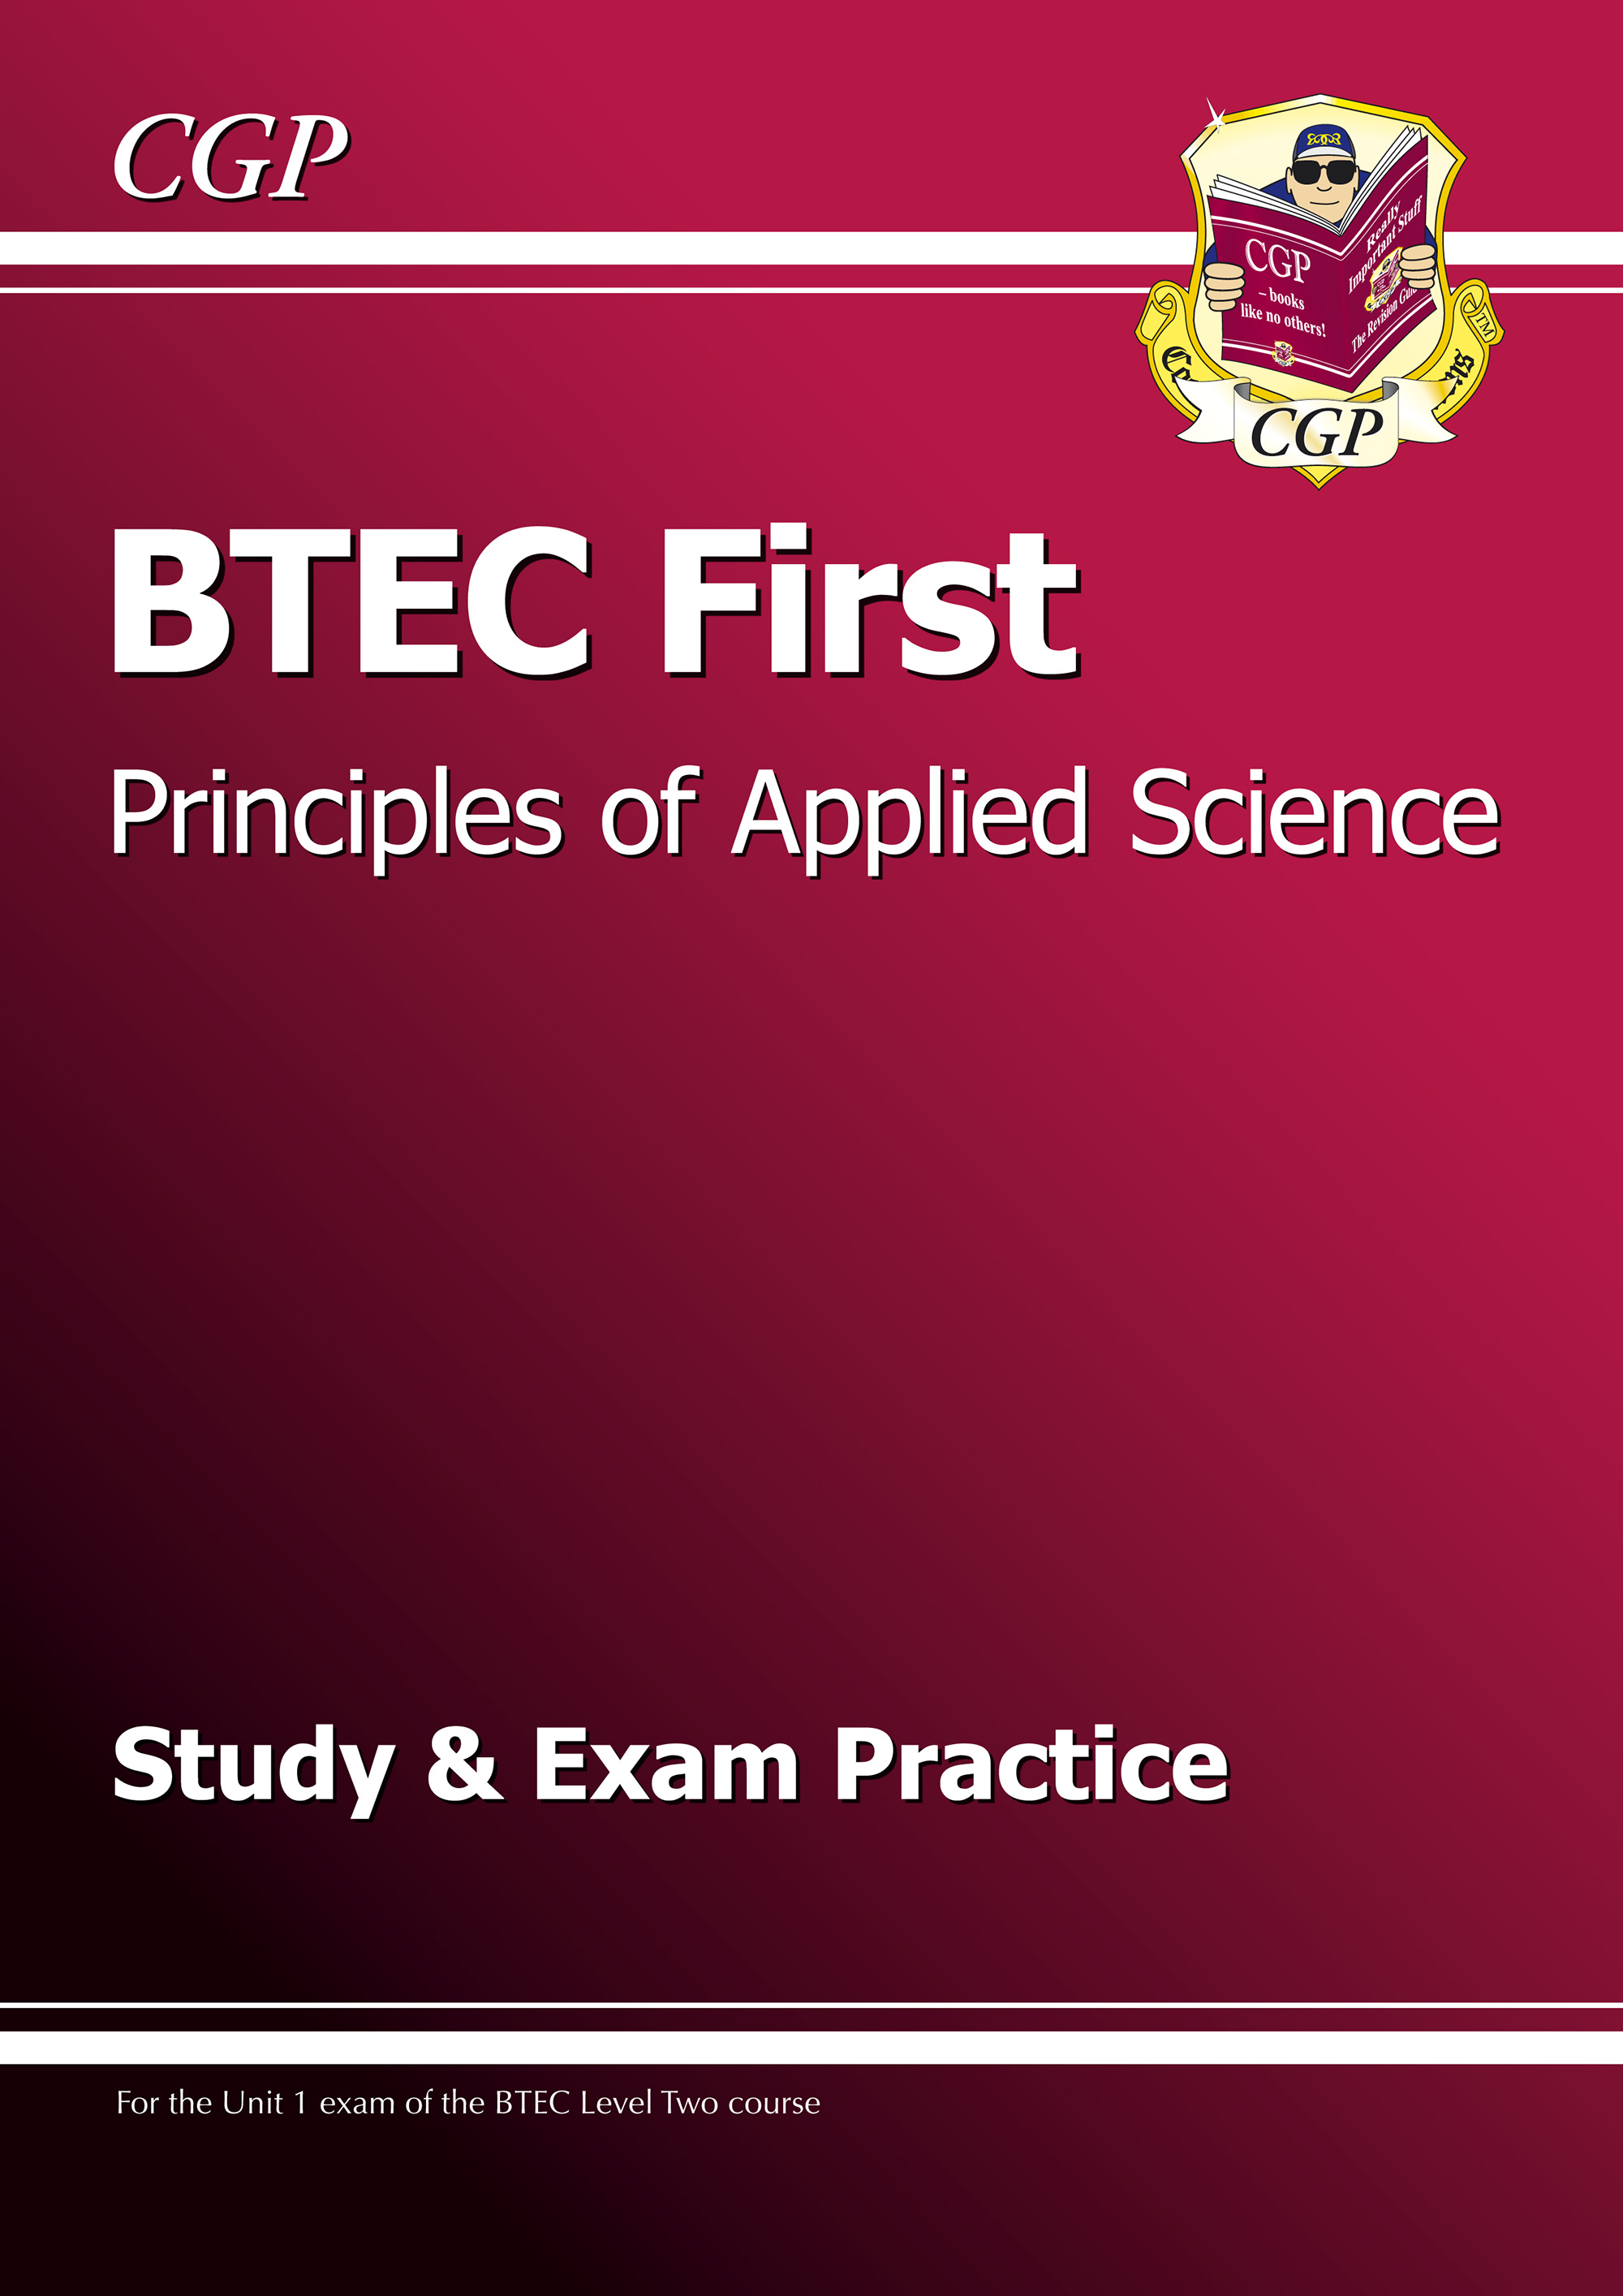 SEARB1 - BTEC First in Principles of Applied Science Study & Exam Practice